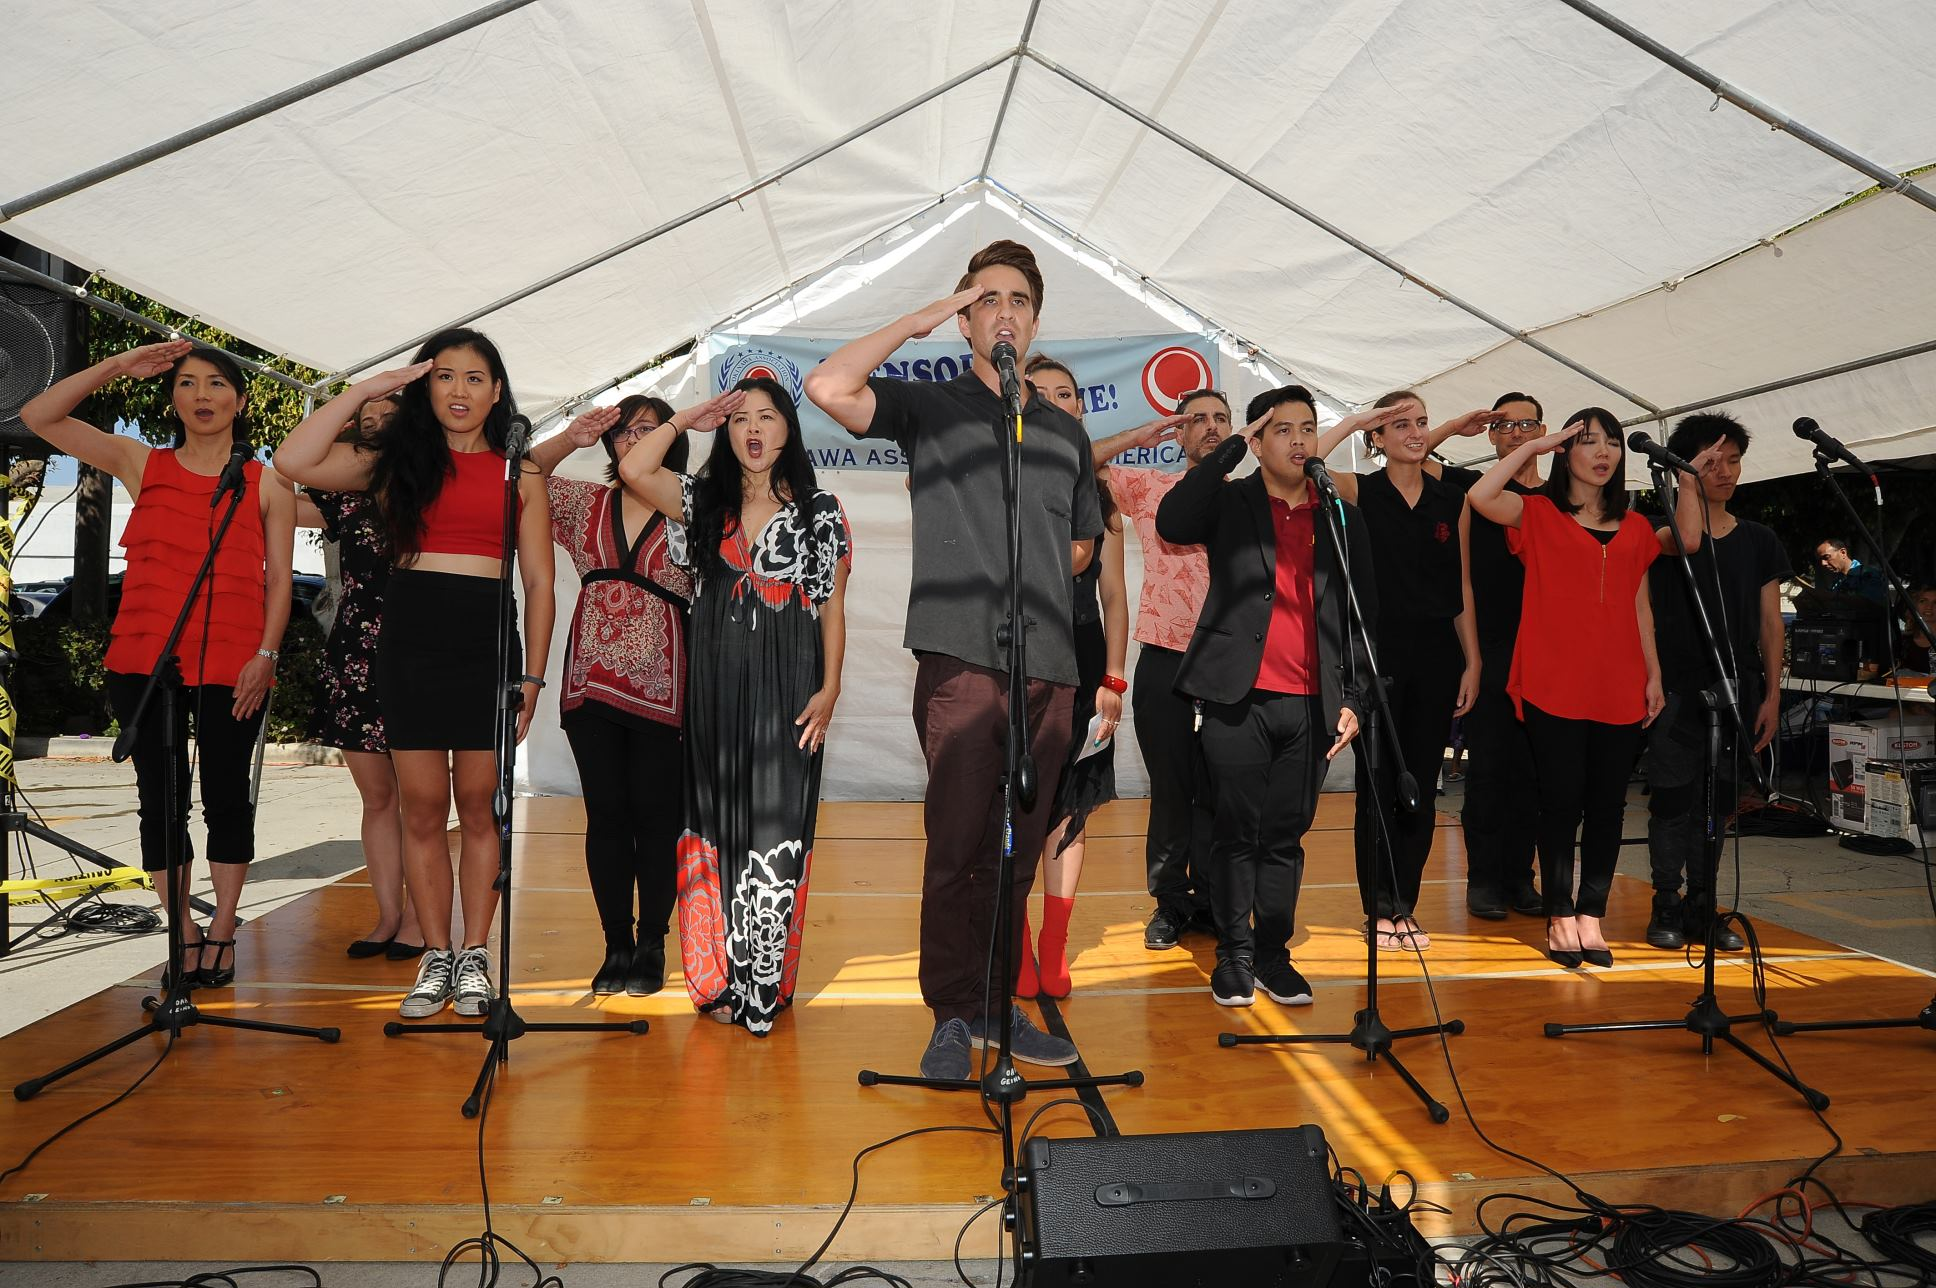 Letters To Eve Performing at The Okinawa Association Festival!